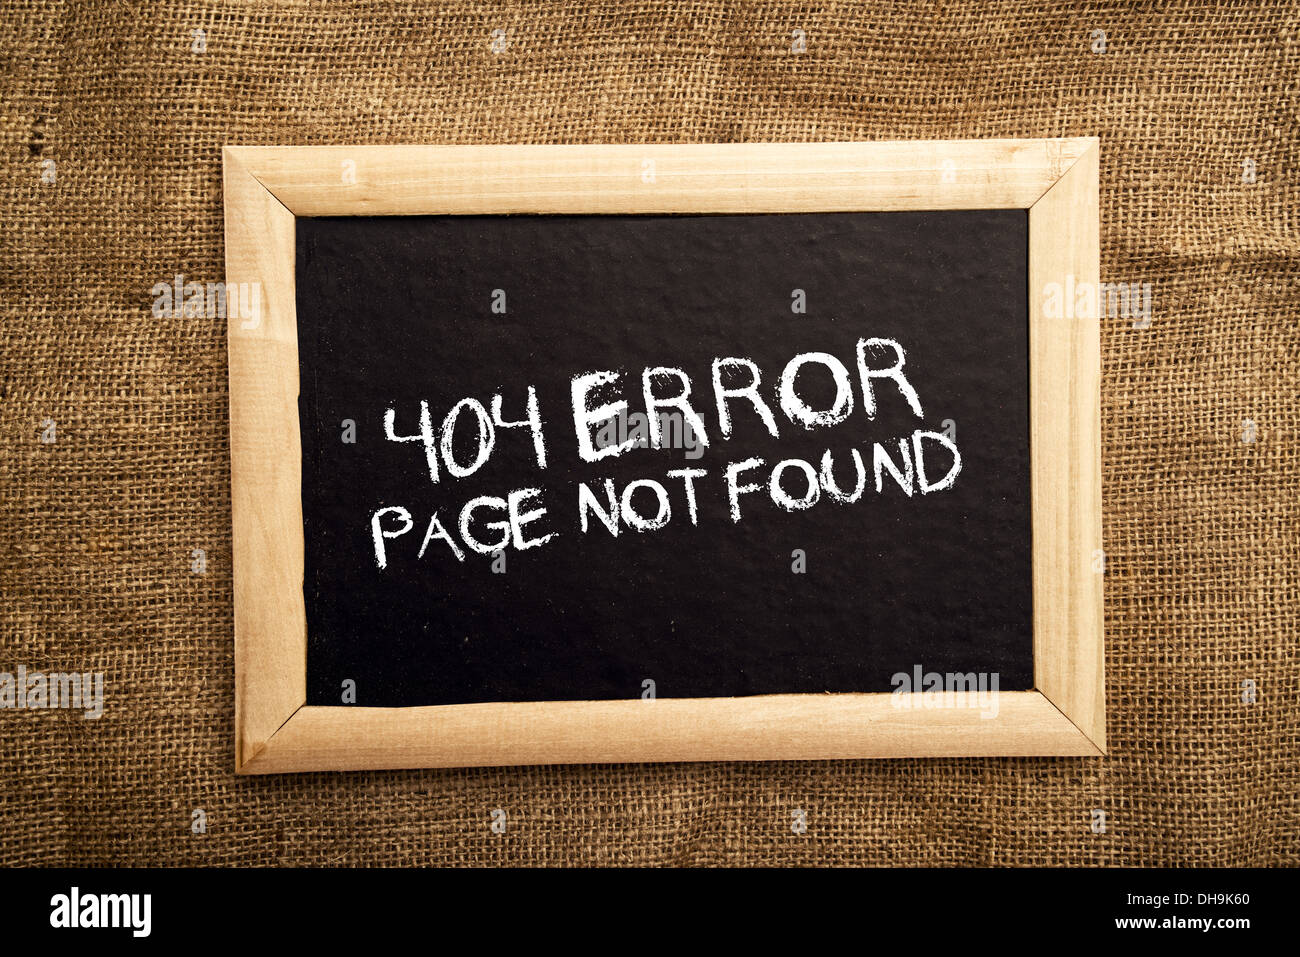 404 error, internet web page not found message on the blackboard. - Stock Image